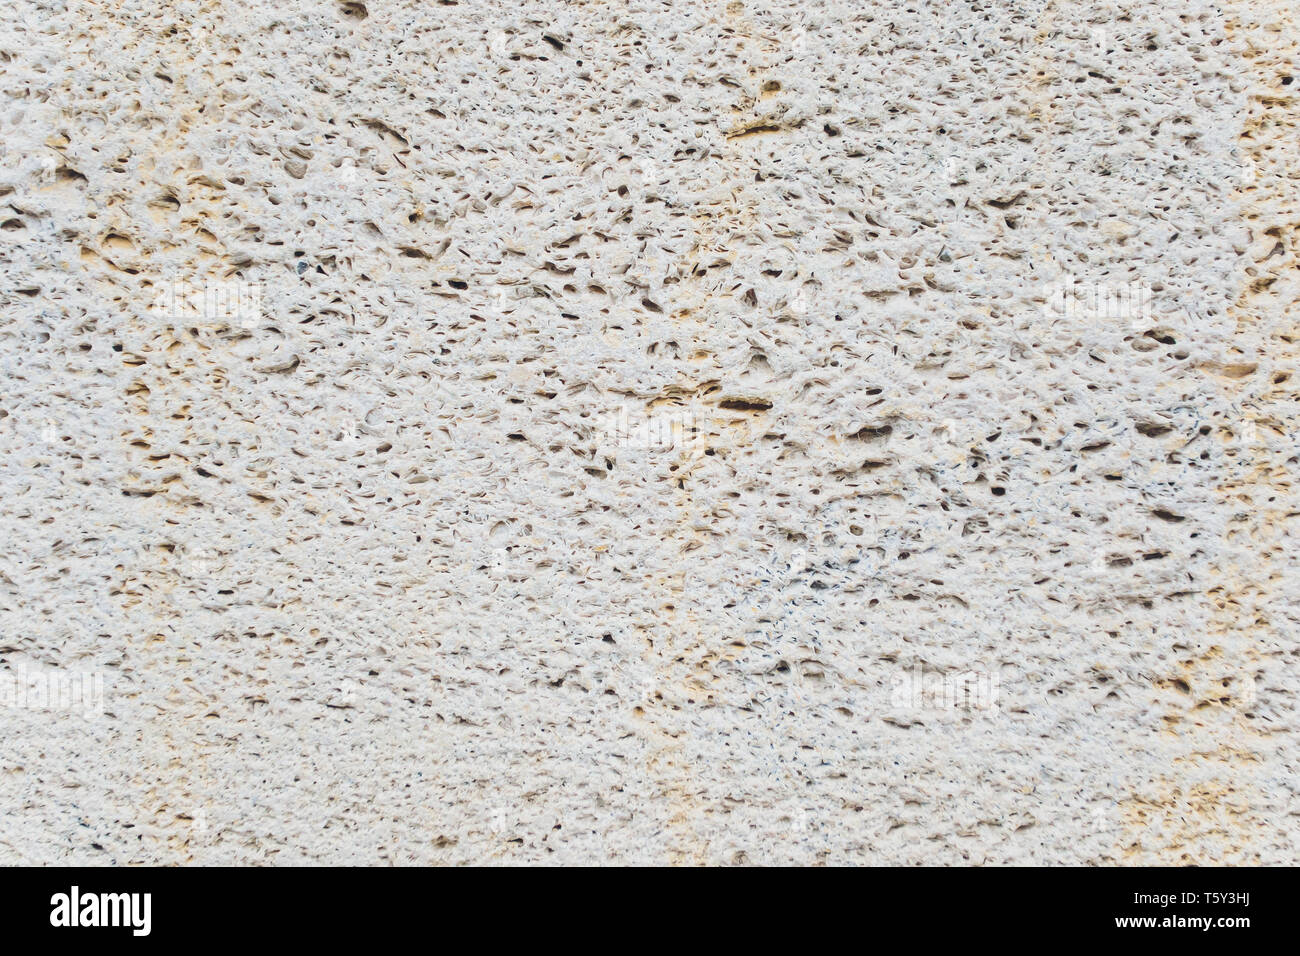 close up abstract industrial background and Cracked beautyful texture with deep pores of cement Smooth plastered stone Grey, Polished toned wall - Stock Image